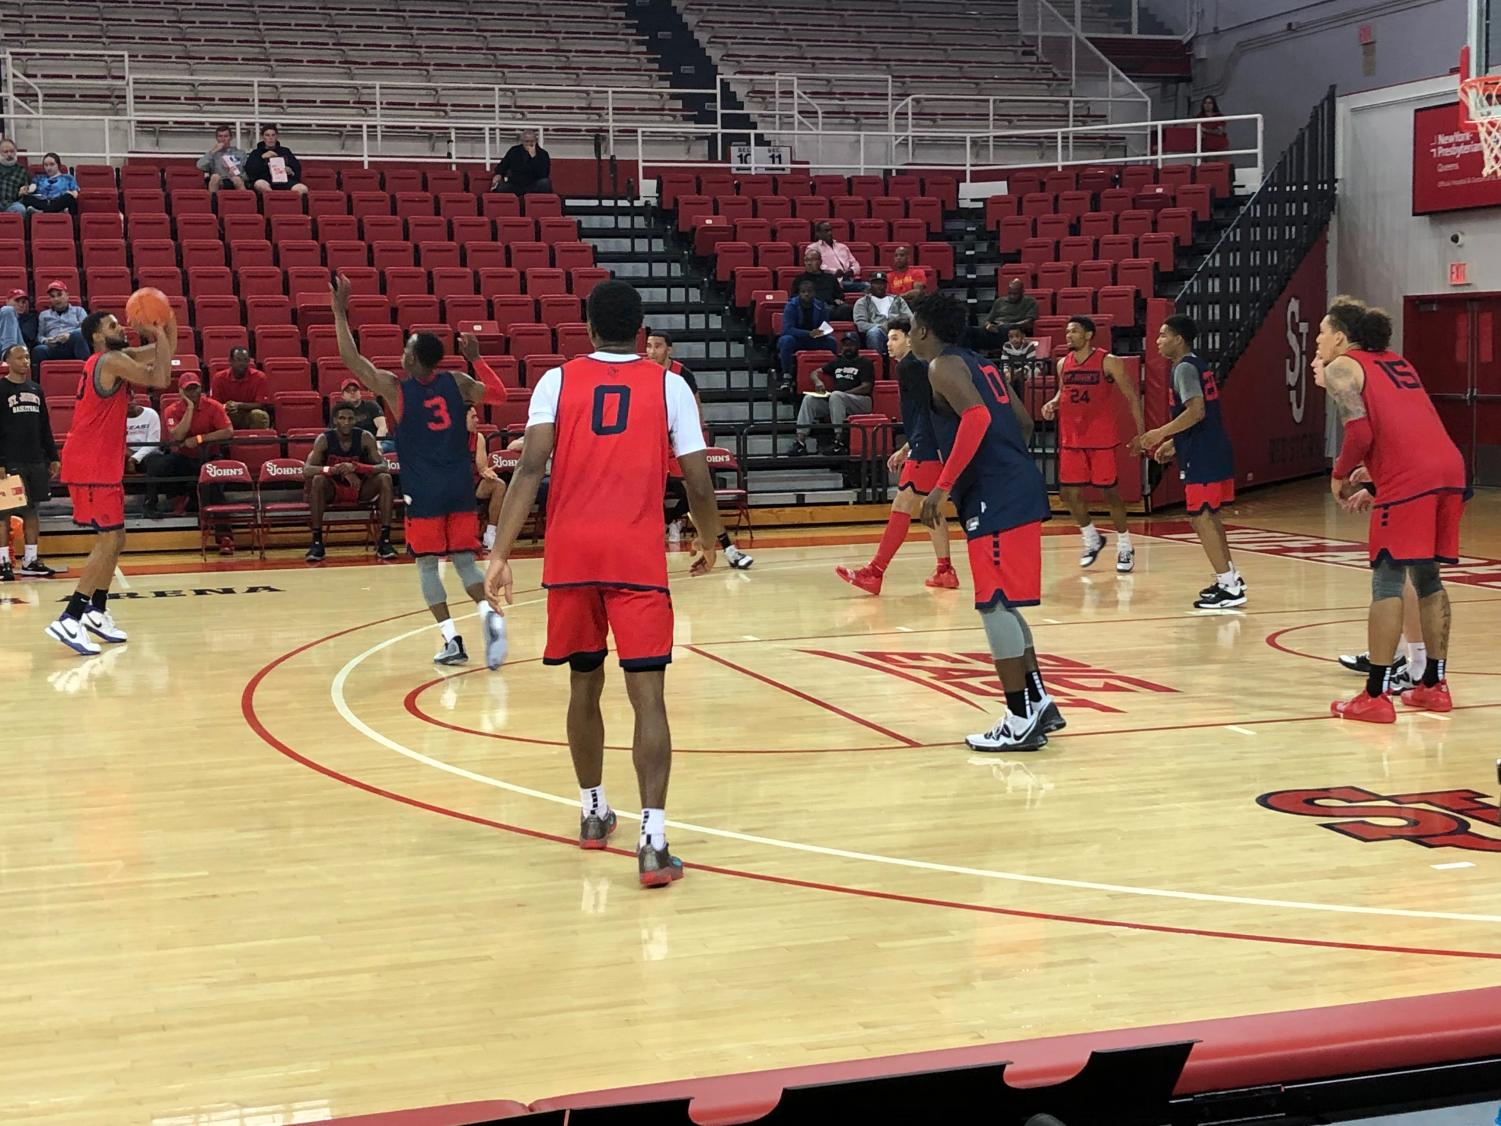 St. John's Men's Basketball practiced in front of season ticket holders this past weekend at Carnesecca.